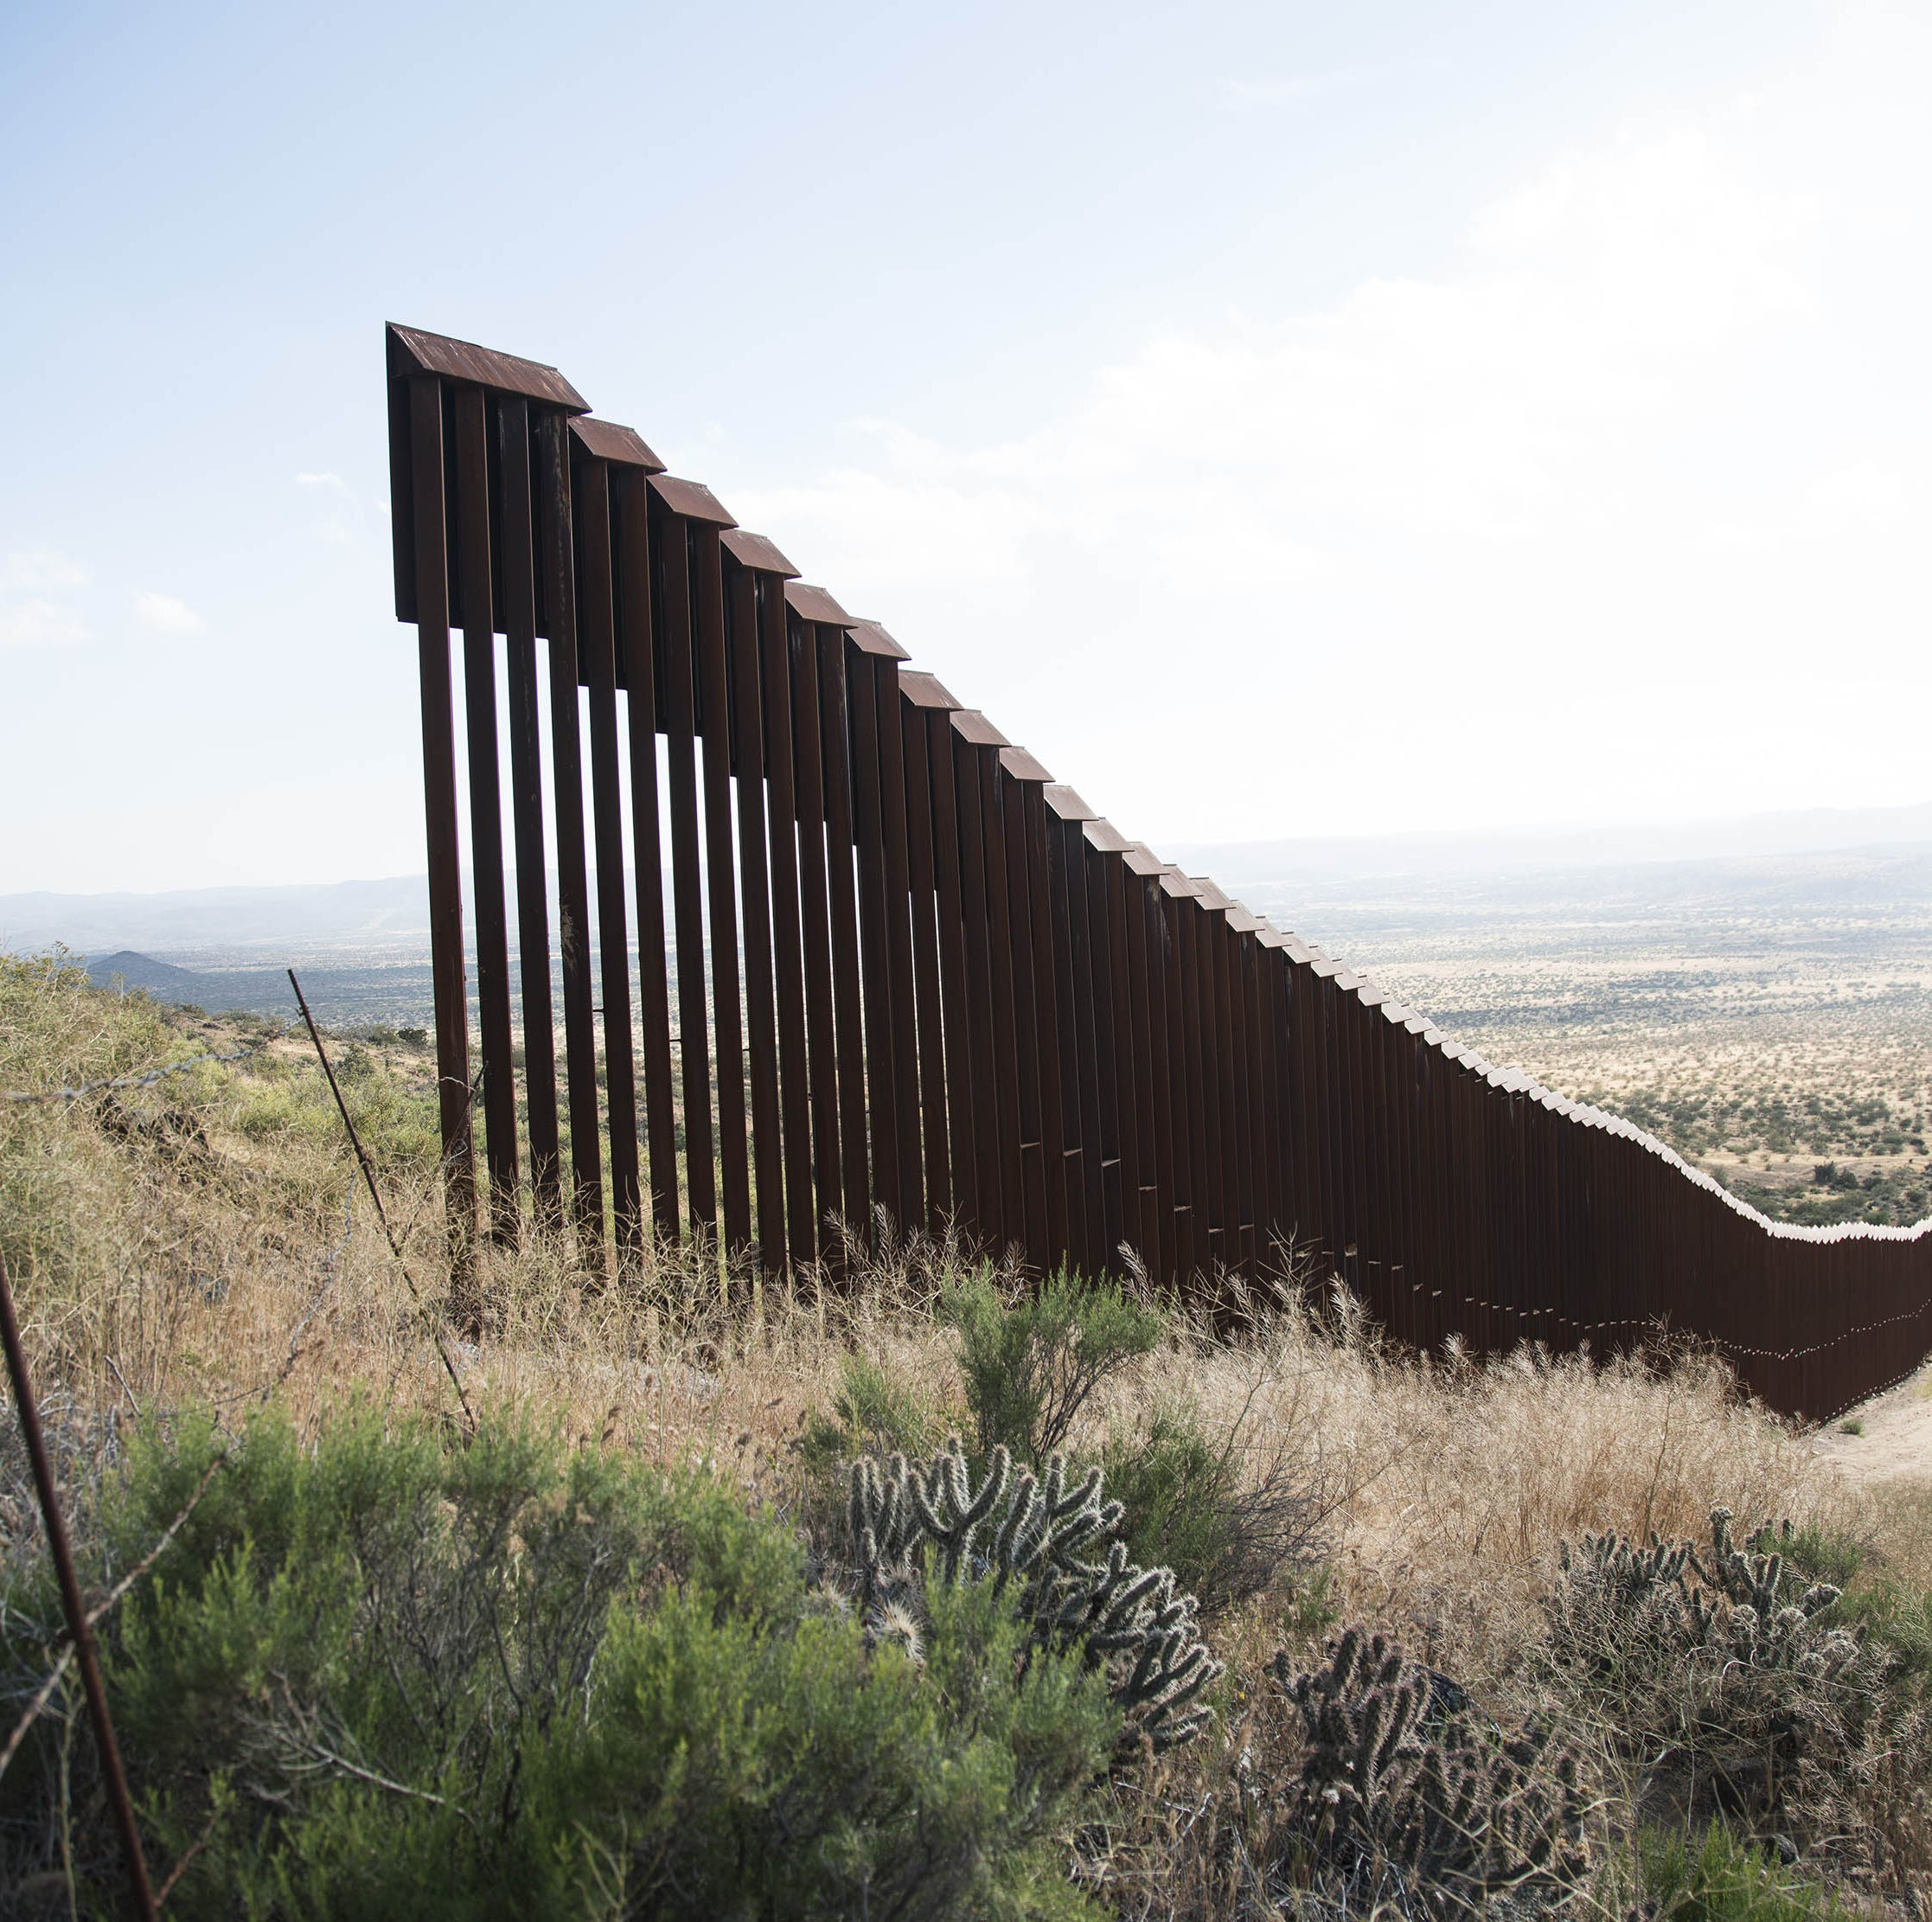 Press-Citizen, FilmScene host screening of documentary about Trump's border wall